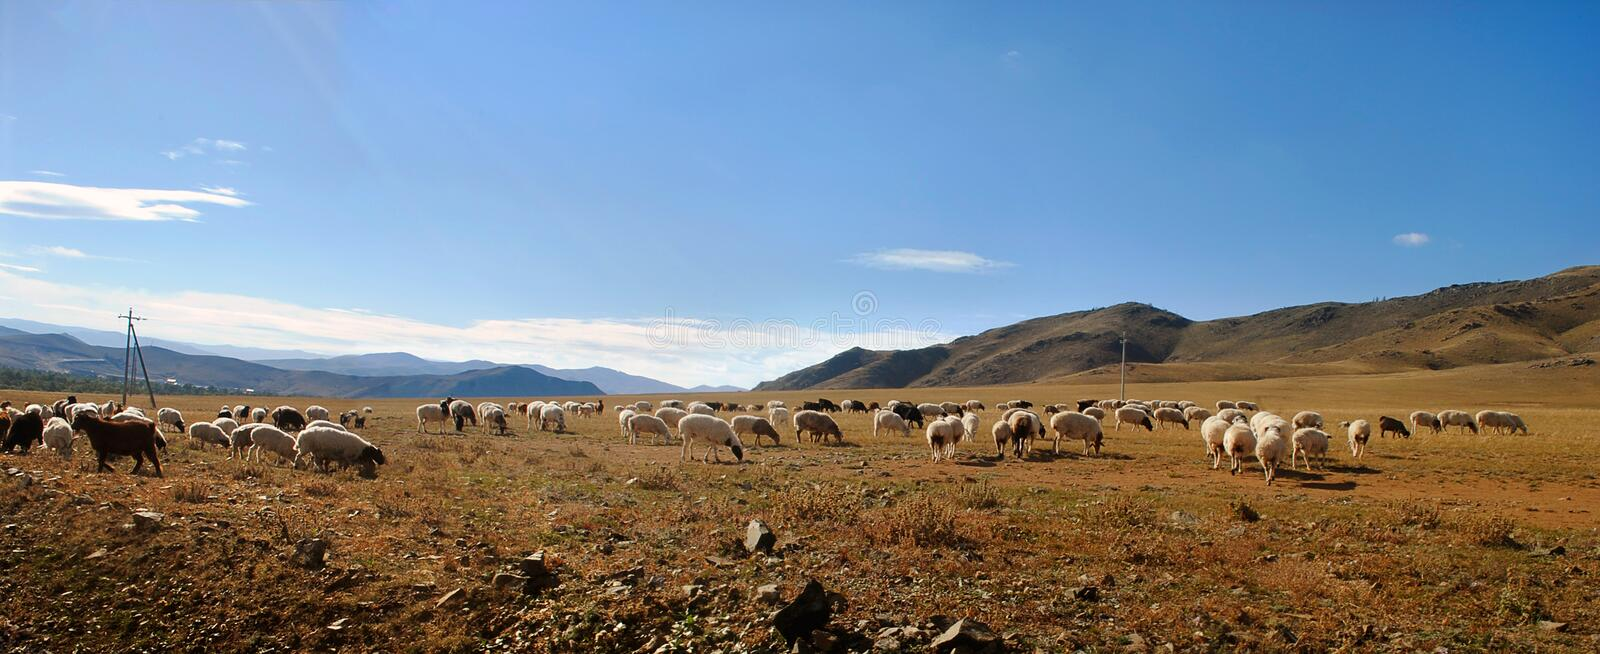 A flock of sheep graze in the steppe on the mountains in the background. Summer-autumn landscape stock images